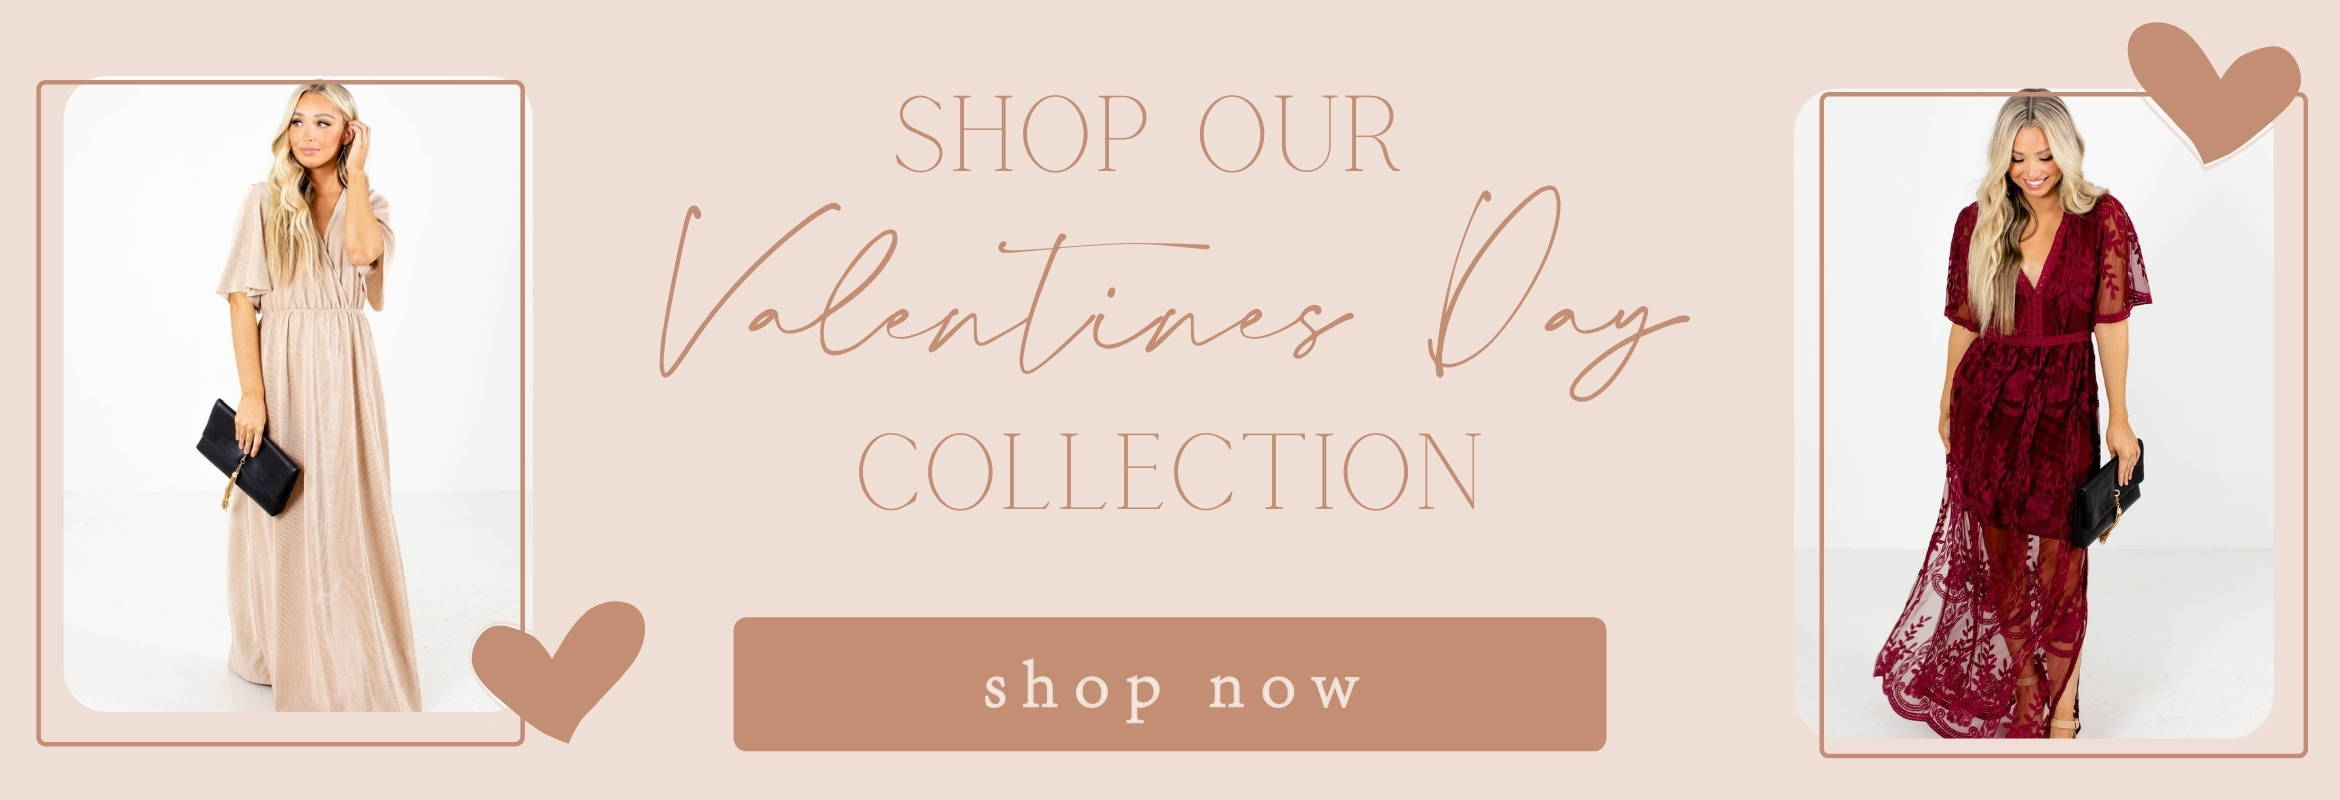 Bella Ella Boutique Valentine's Day Collection is available! Shop now.